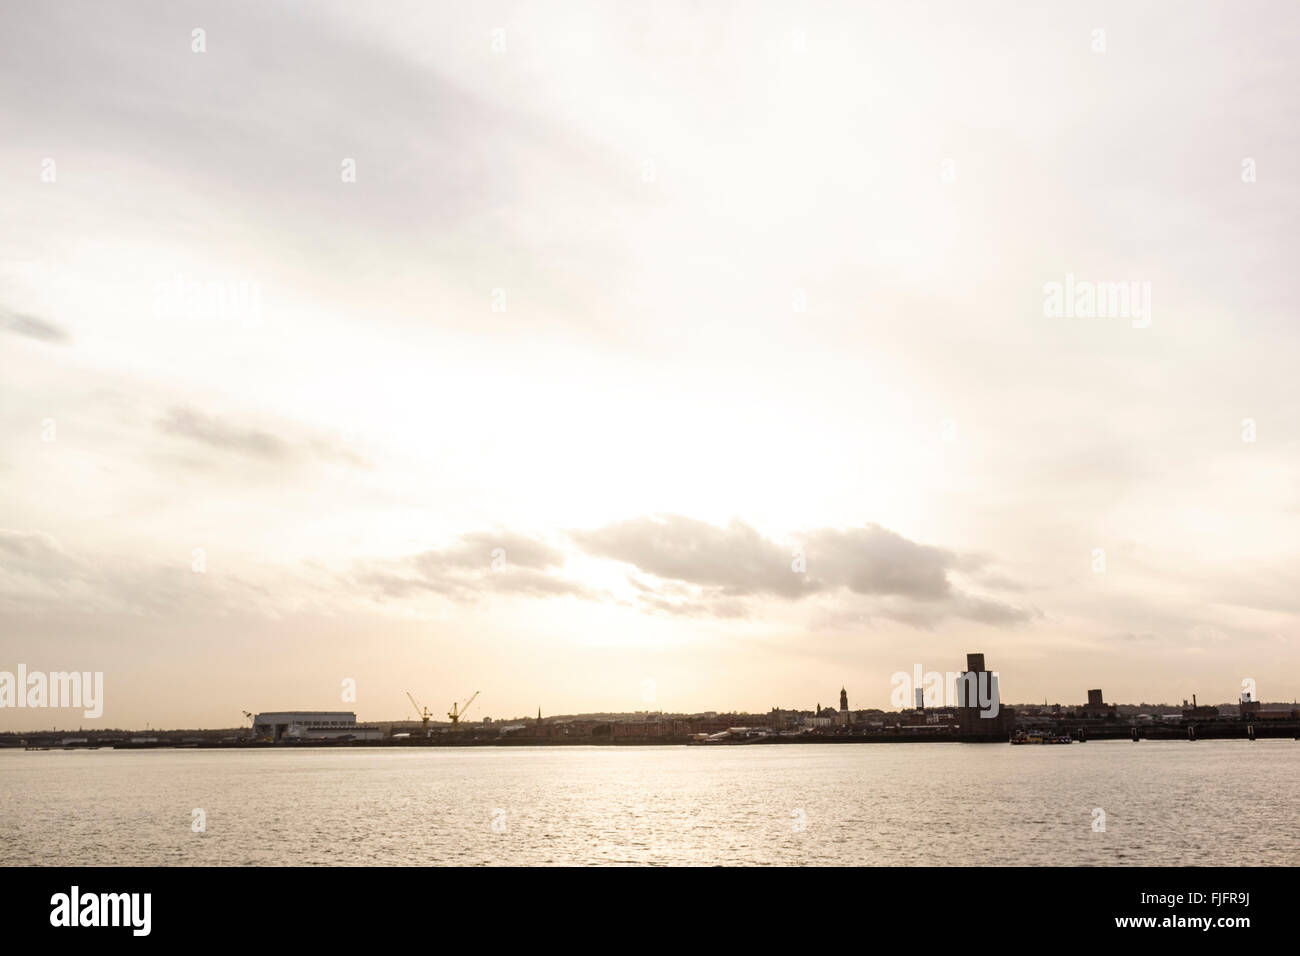 River Mersey looking south from Liverpool, Merseyside. - Stock Image